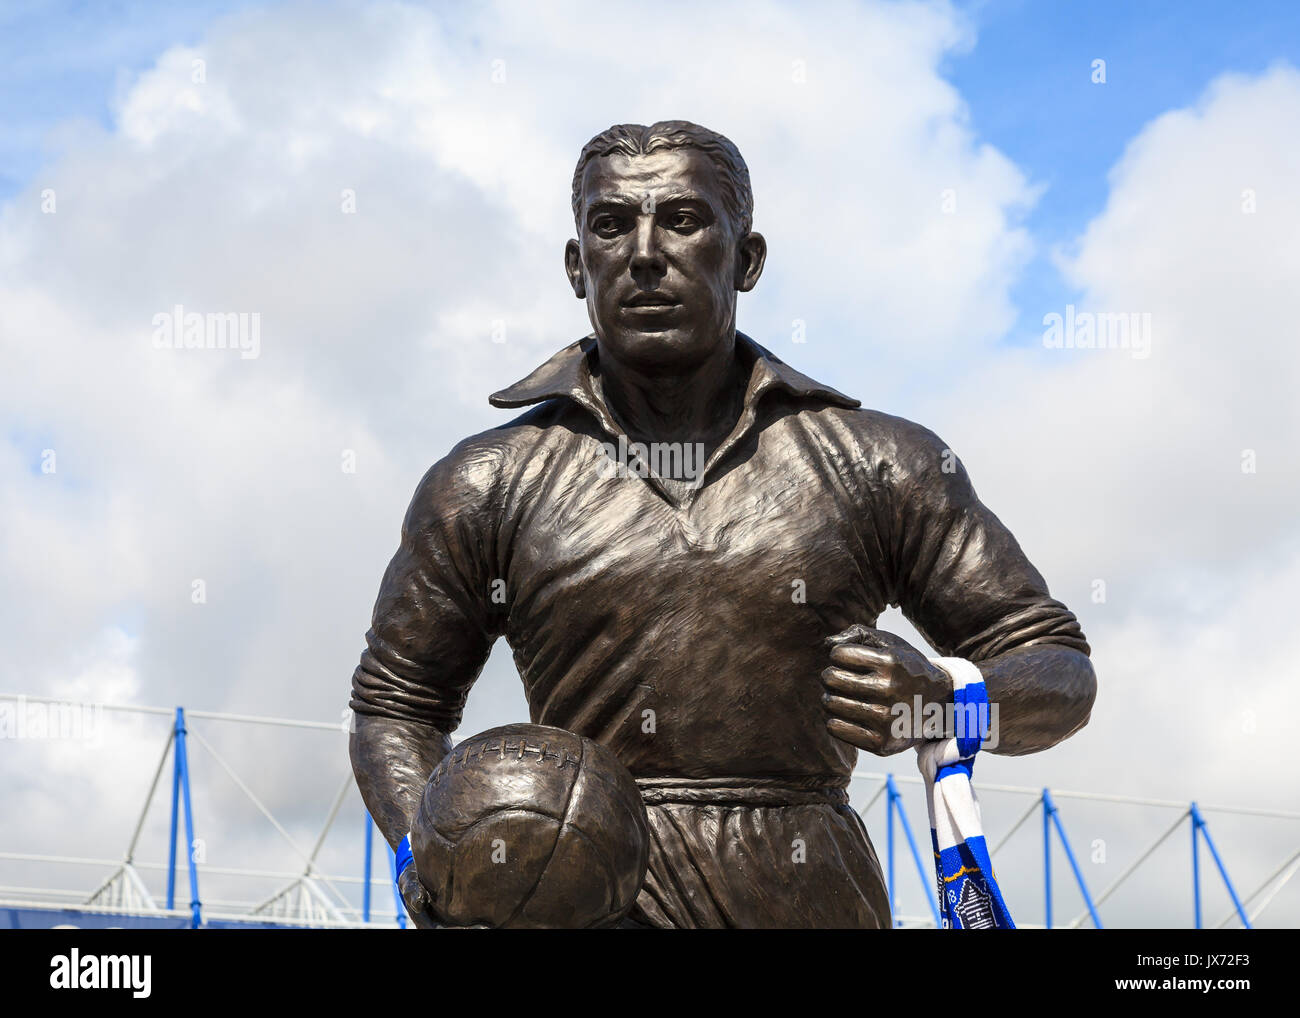 A statue of Dixie Dean footballer and goalscorer outside Goodison Park in England.  It celebrates his contribution to Everton Football Club. - Stock Image